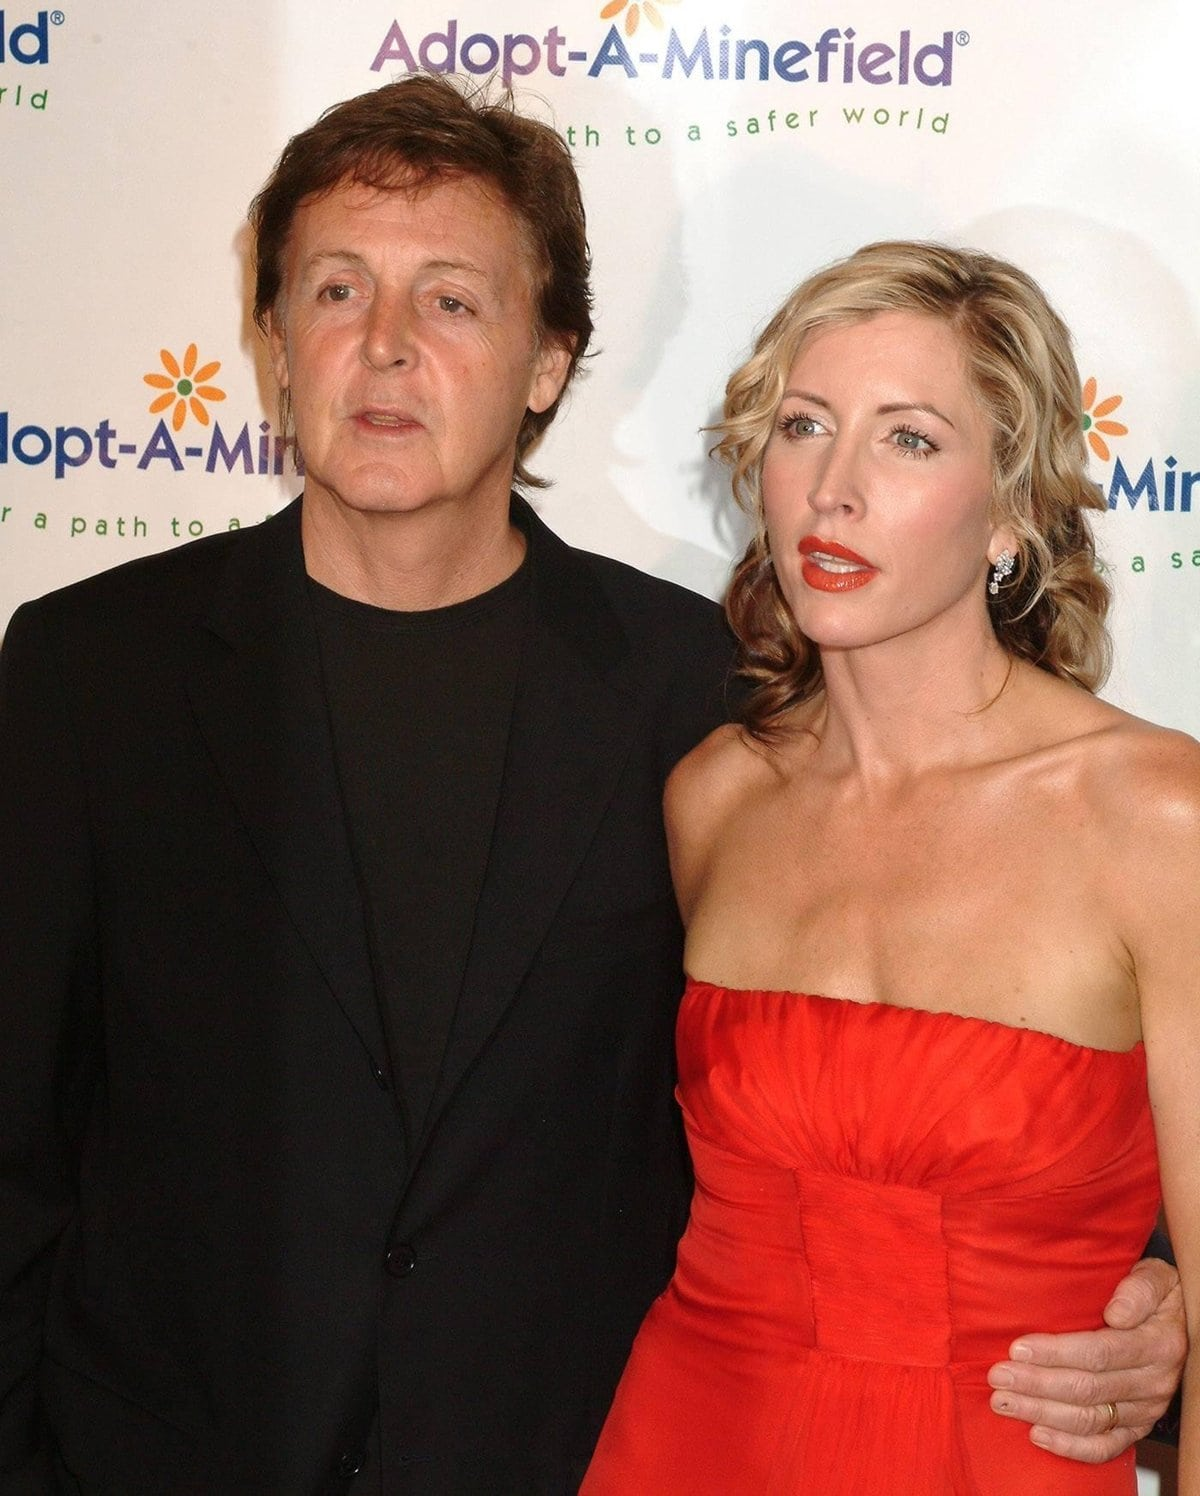 Paul McCartney and Heather Mills were married from 2002 until 2008